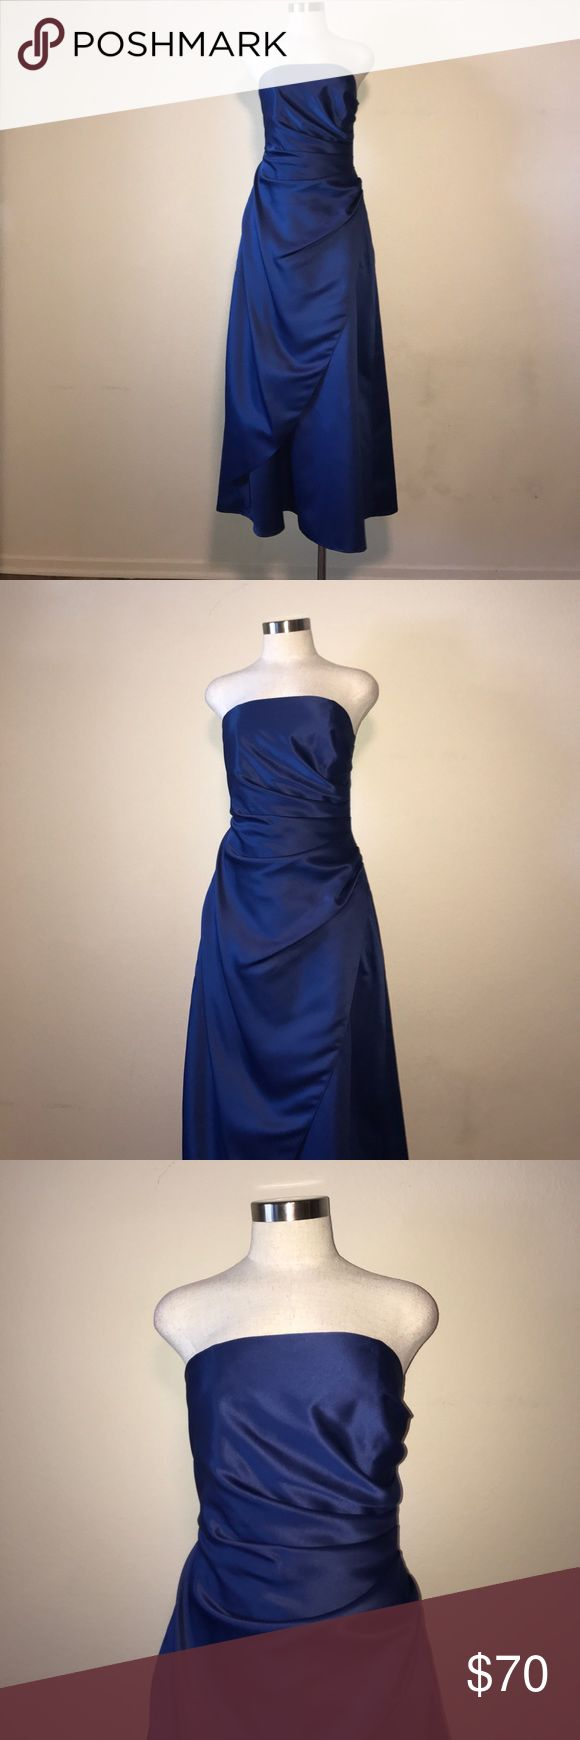 Urban Girl Nites Royal Blue Prom Dress Size 7/8❤ Urban Girl Nites royal Blue strapless gown! Perfect for Prom 2017! Size is 7/8 Juniors. Measurements are: Length 47 inches, bust 16 inches and waist 16 1/2 inches! Material is 100% polyester and lining is 100% acetate! Gorgeous and ready to ship! ❤❤❤ Urban Girl Nites Dresses Prom